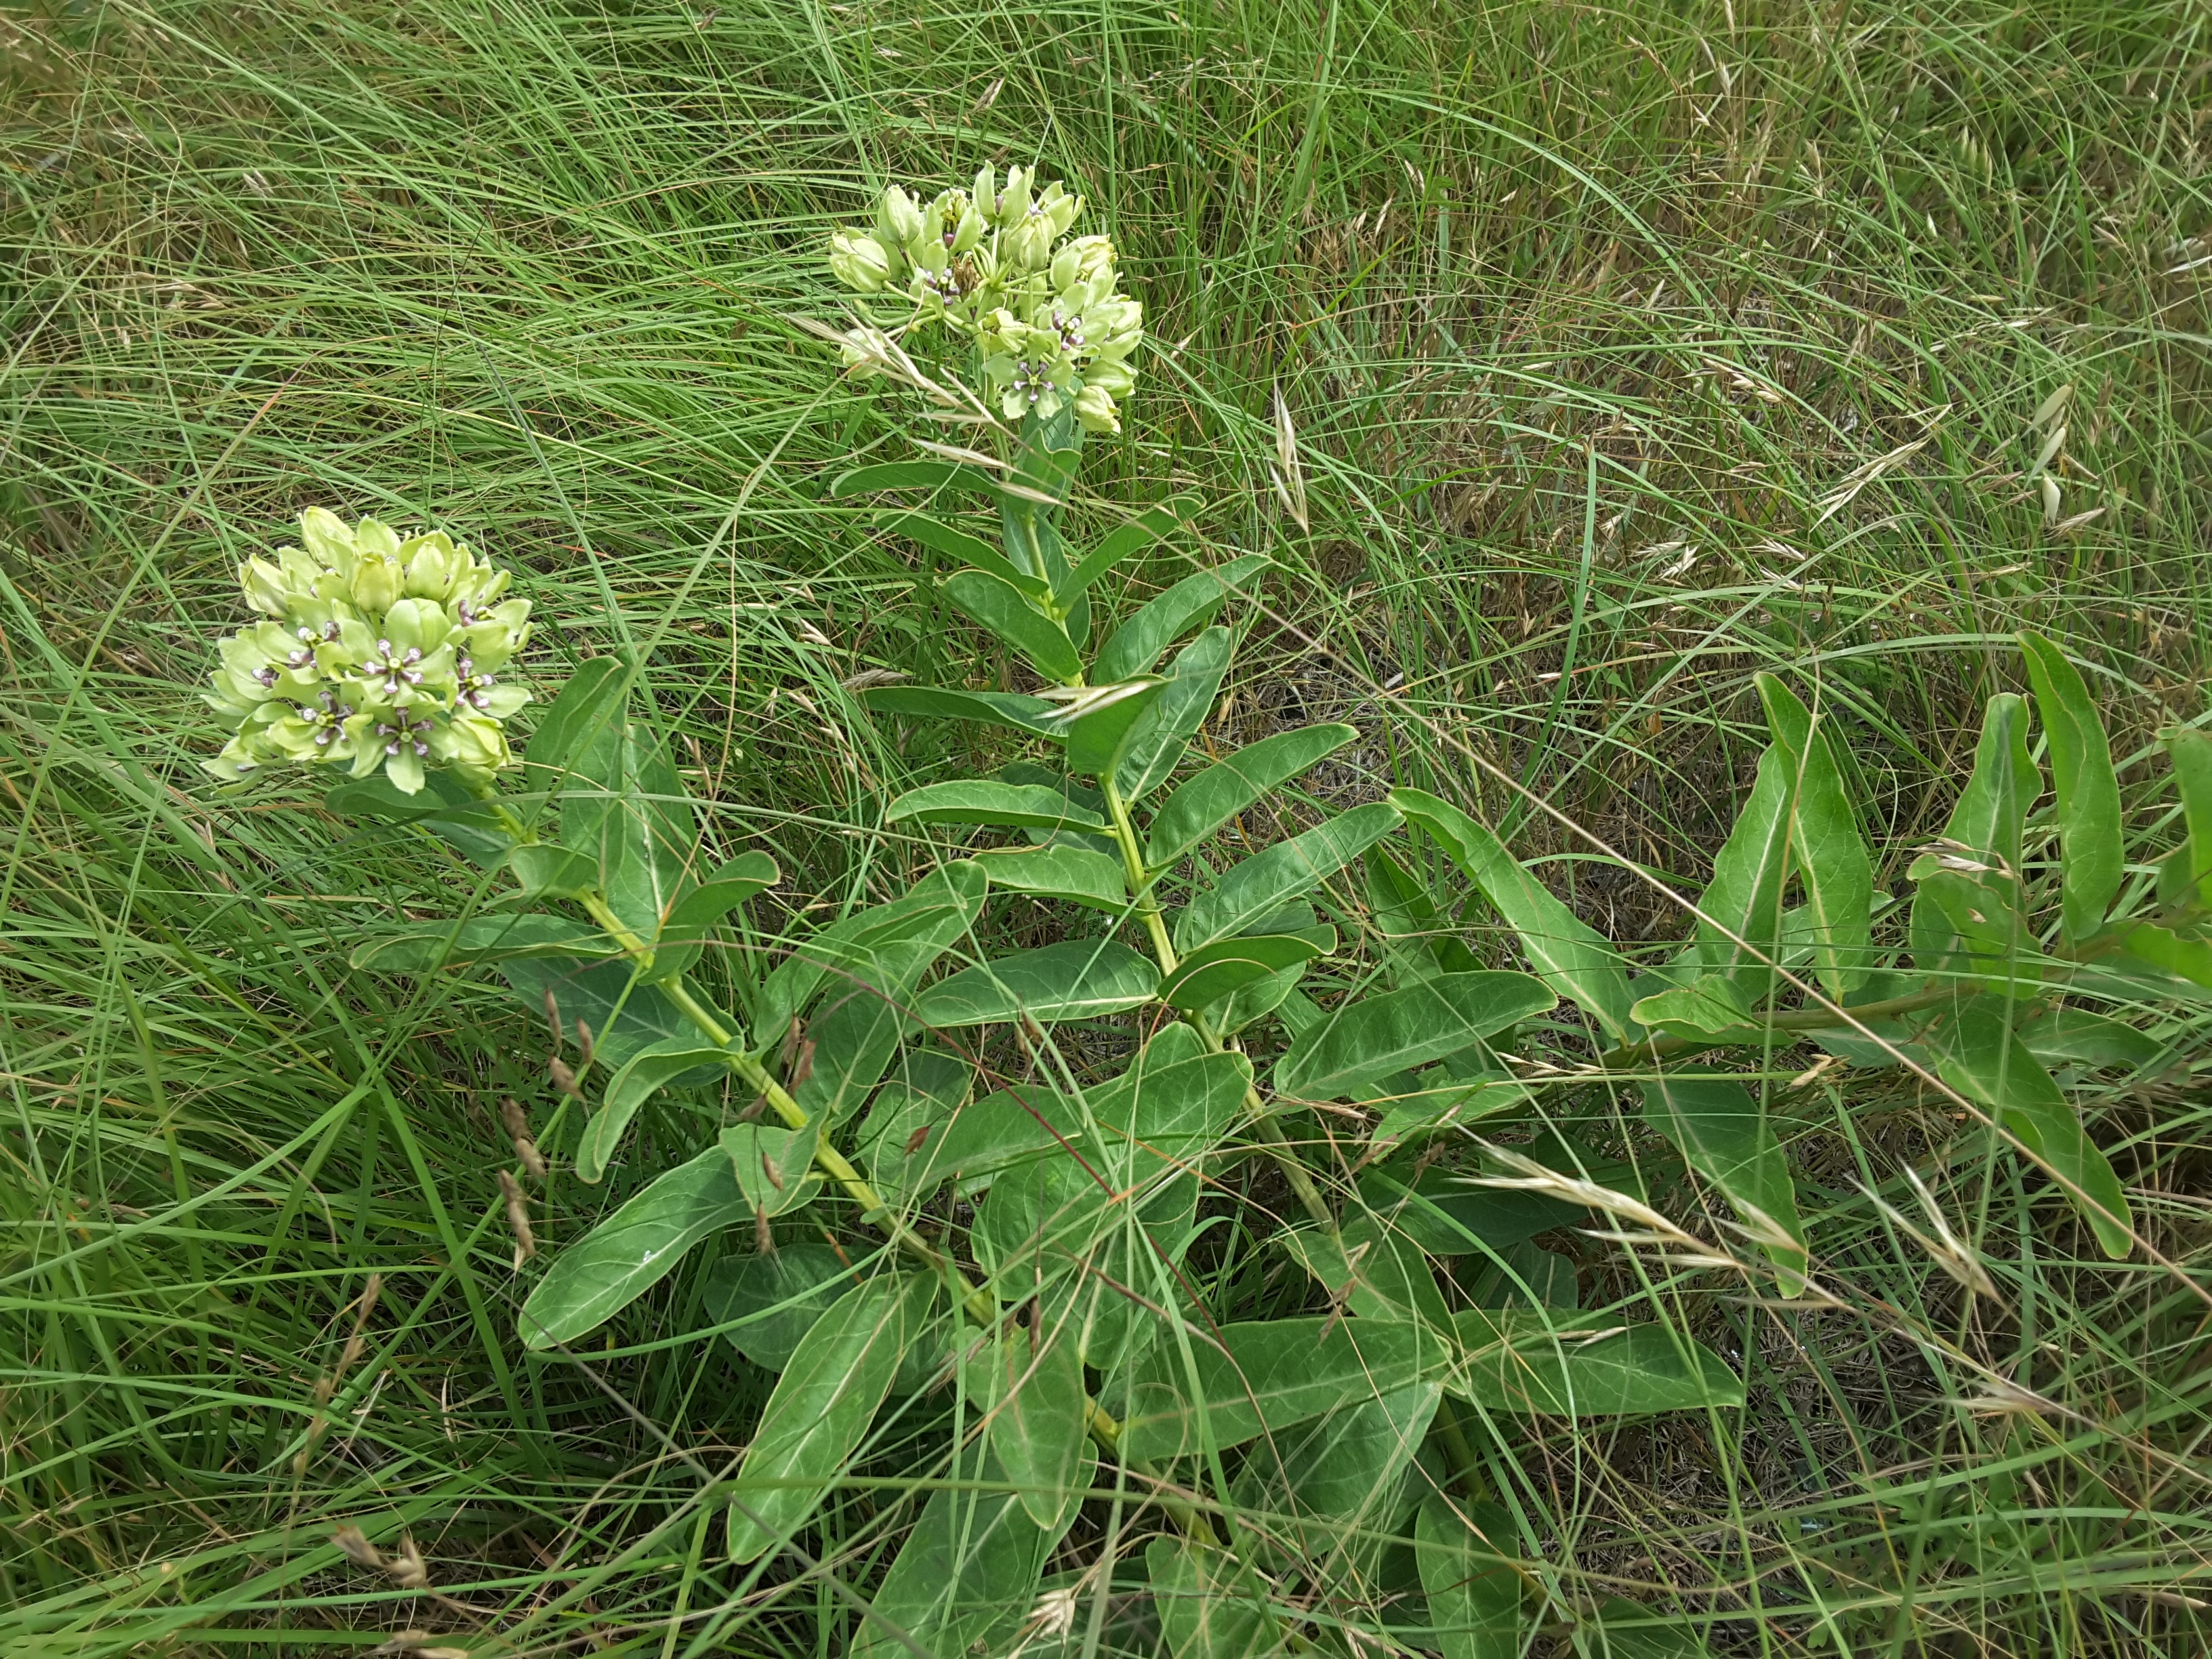 Working with TXDOT to Preserve Native Plant Habitat Along